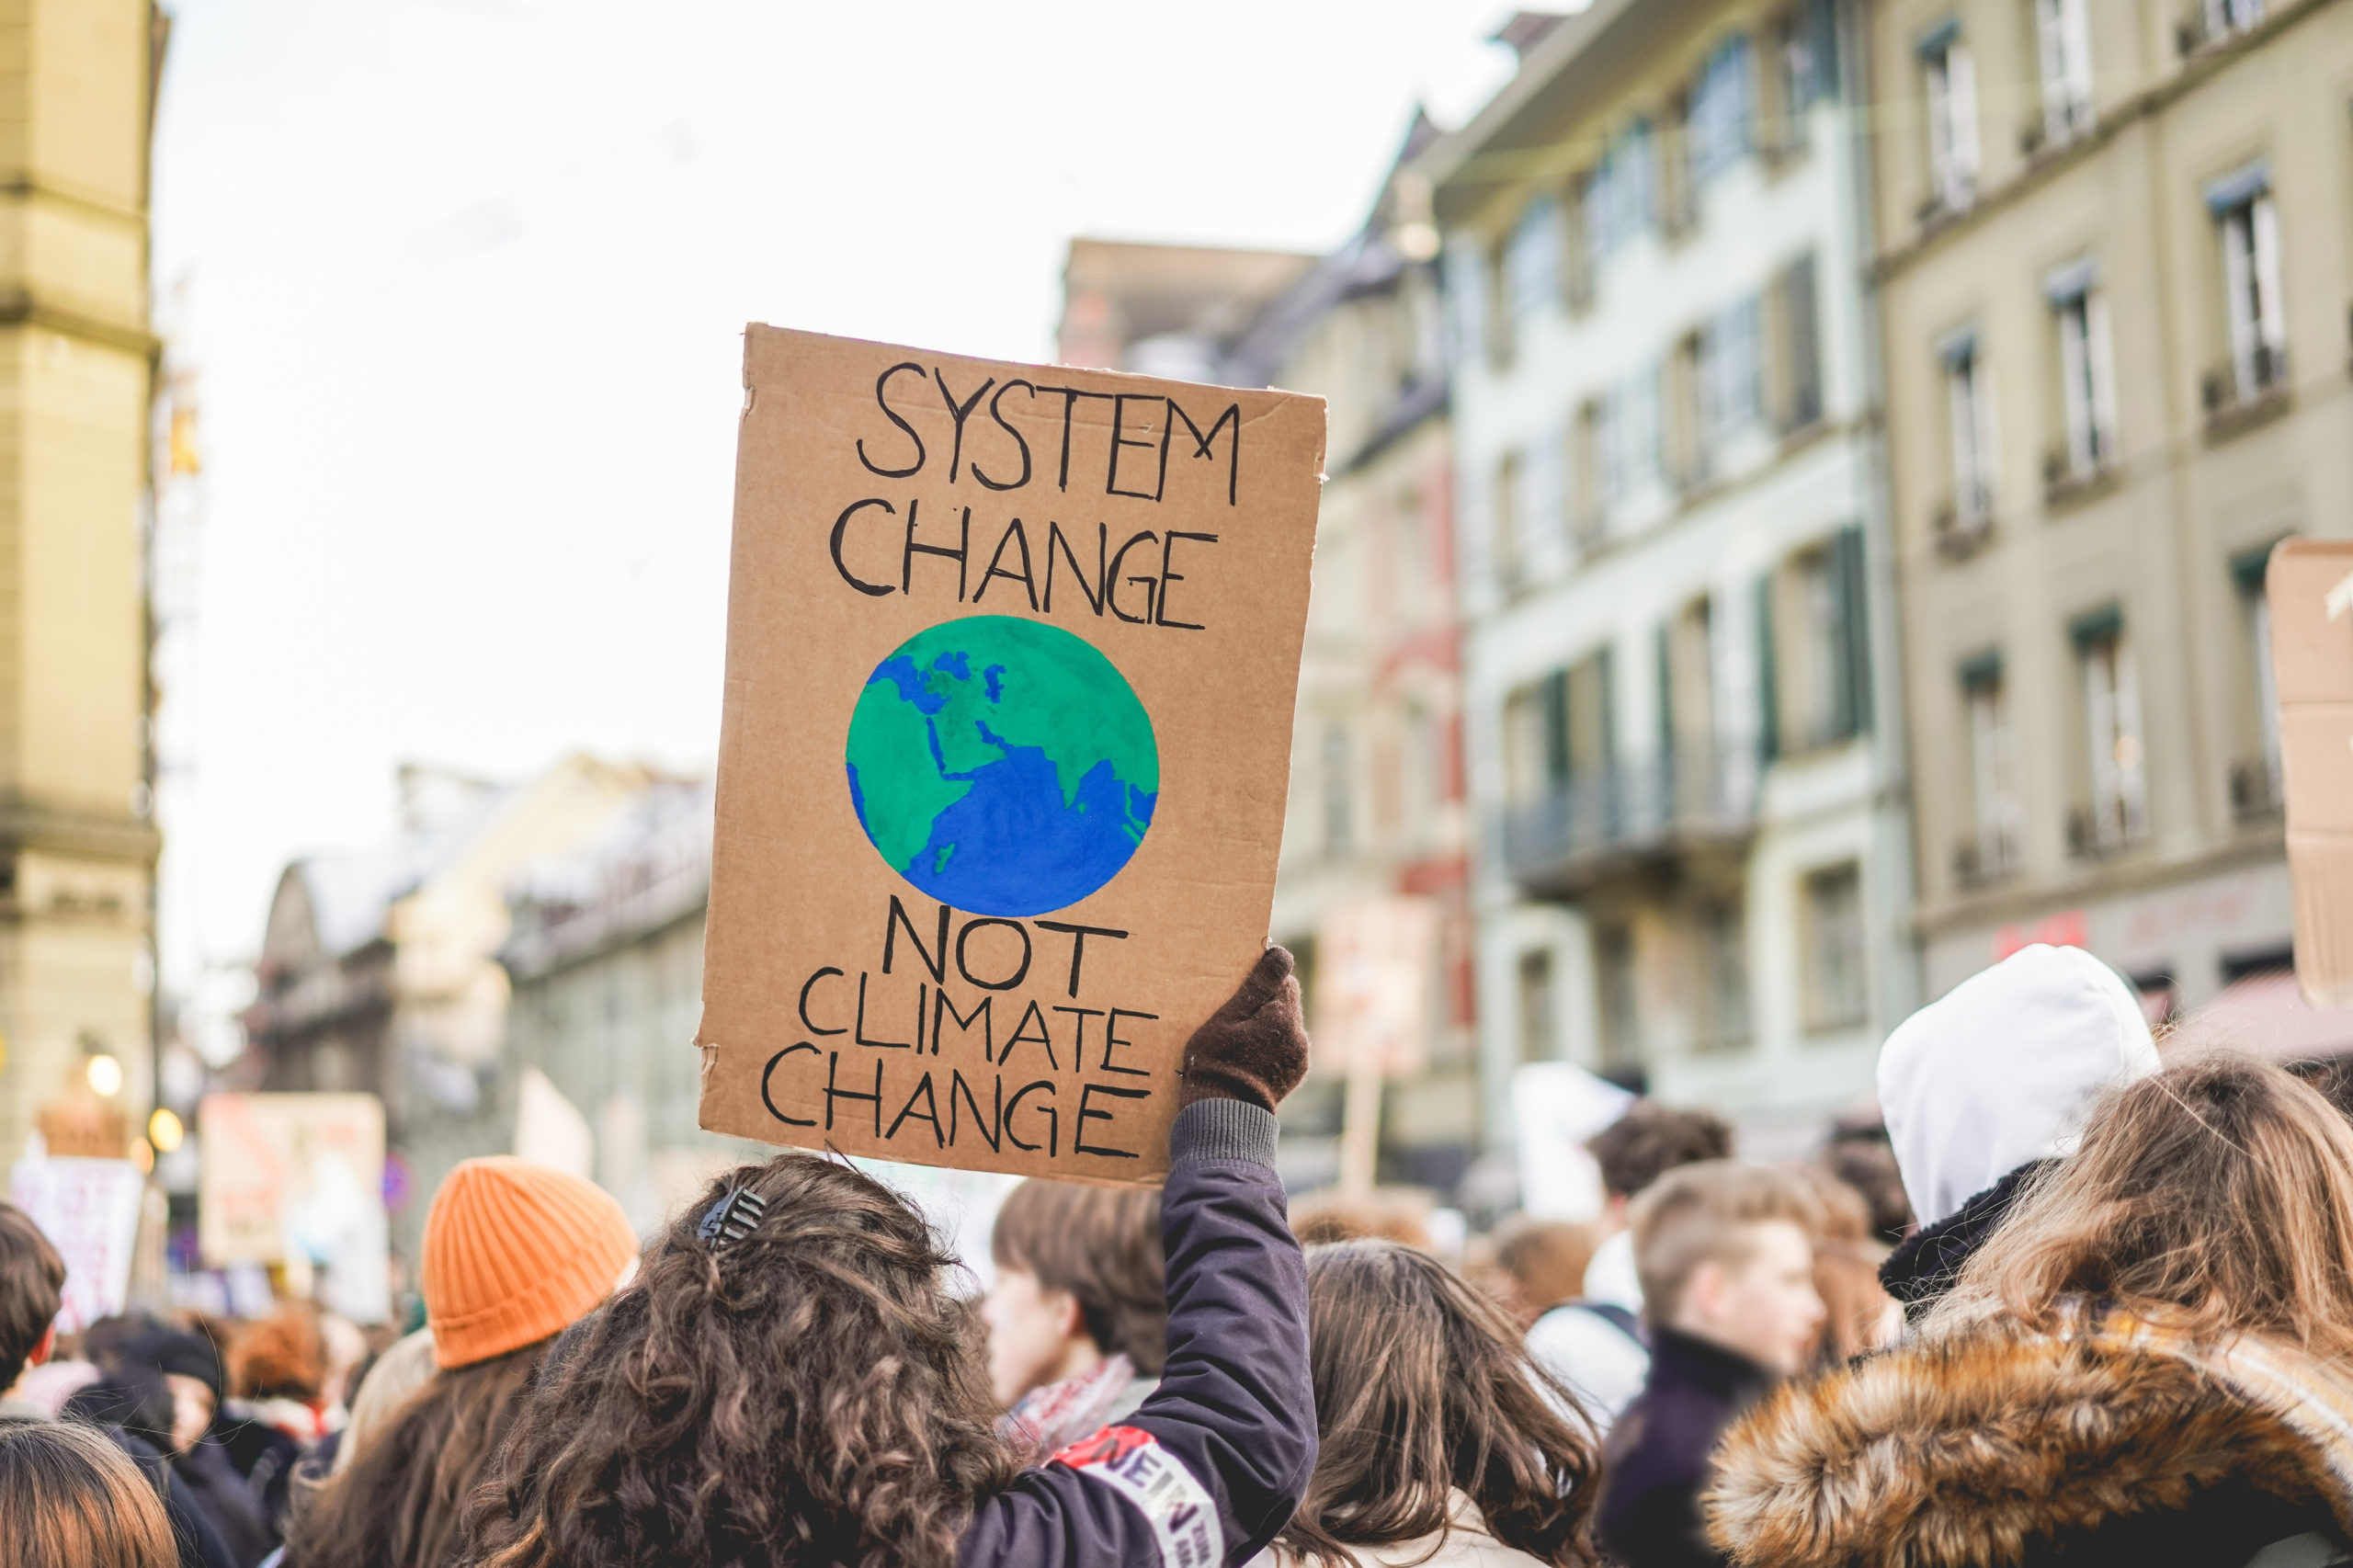 What is the main cause of climate change?